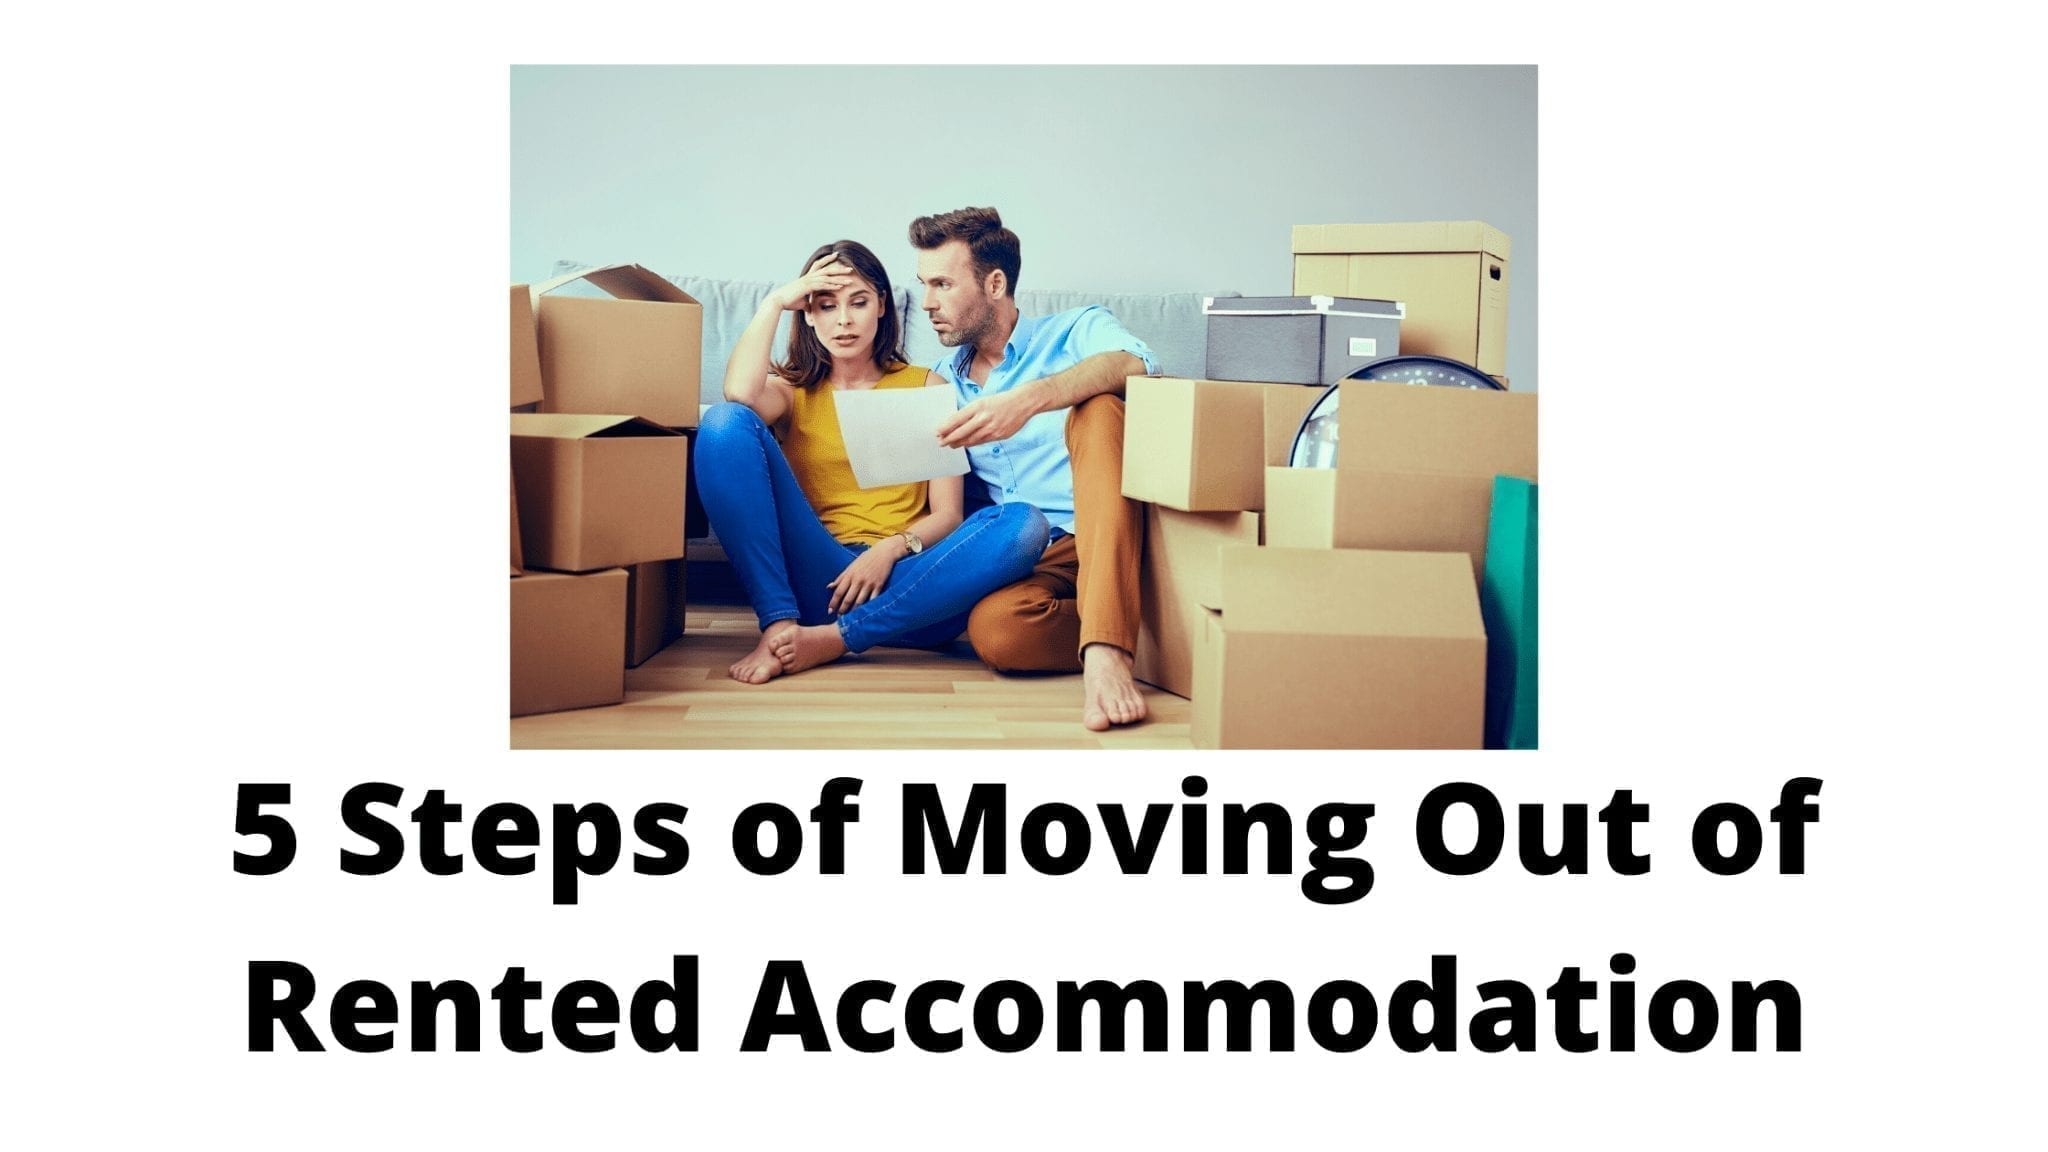 5 Steps of Moving Out of Rented Accommodation